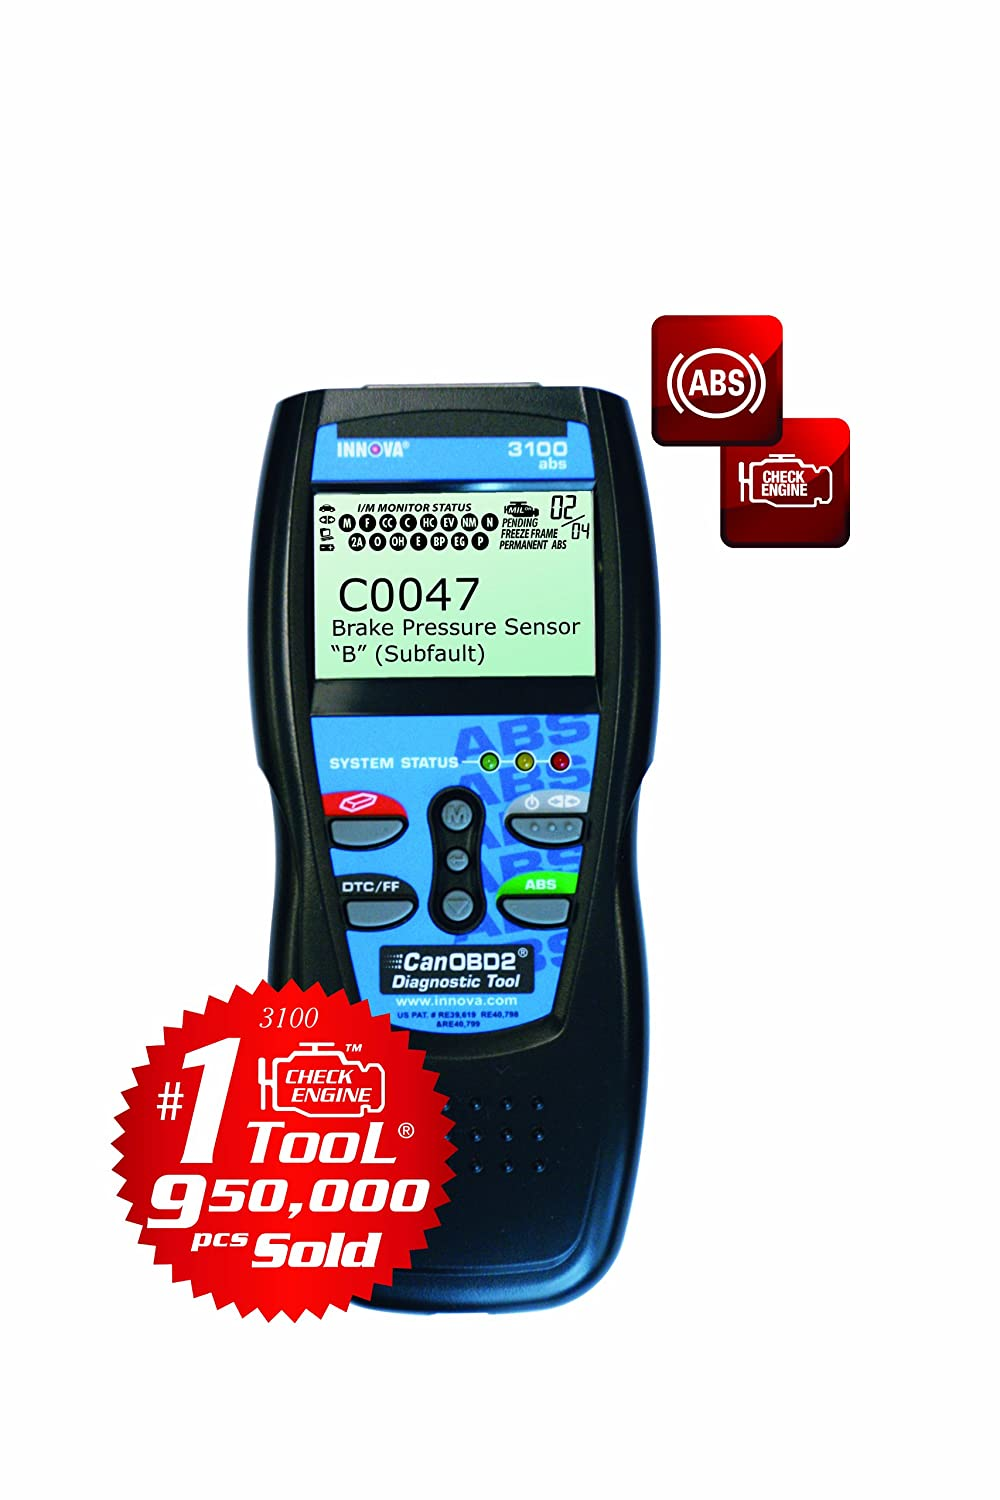 INNOVA 3100 Diagnostic Scan Tool/Code Reader with ABS